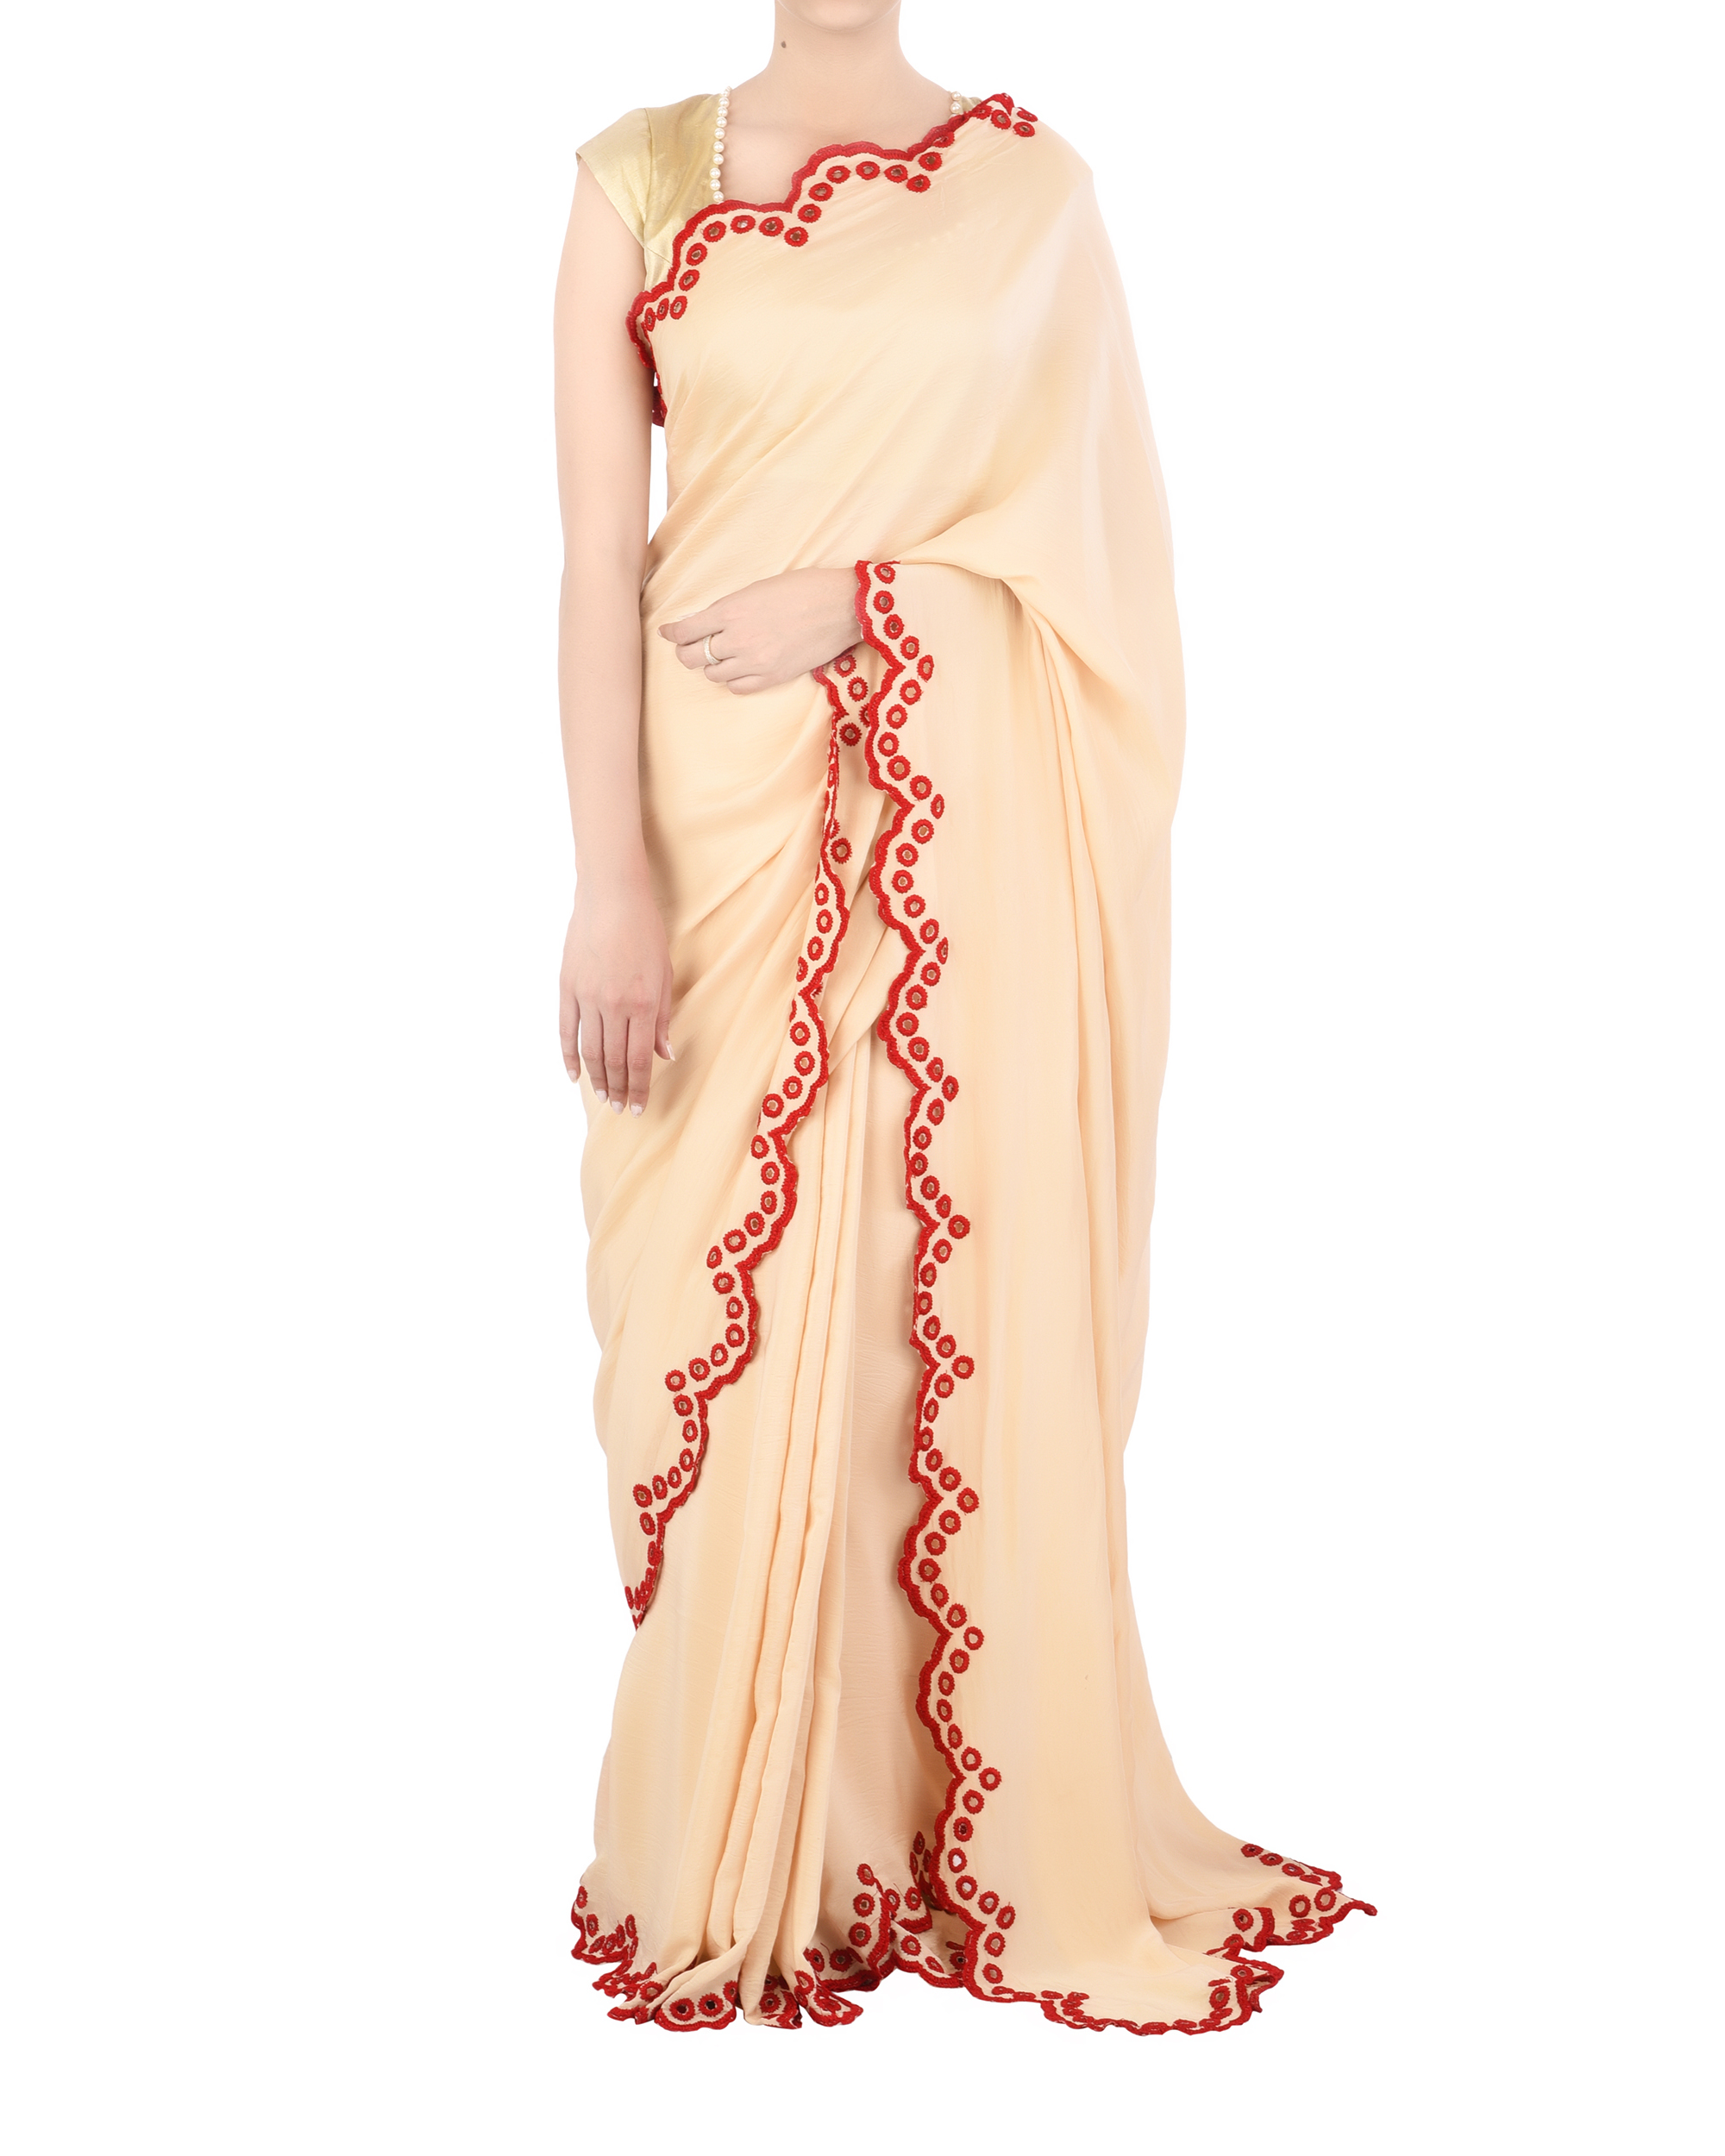 Satin sari with red scallop border